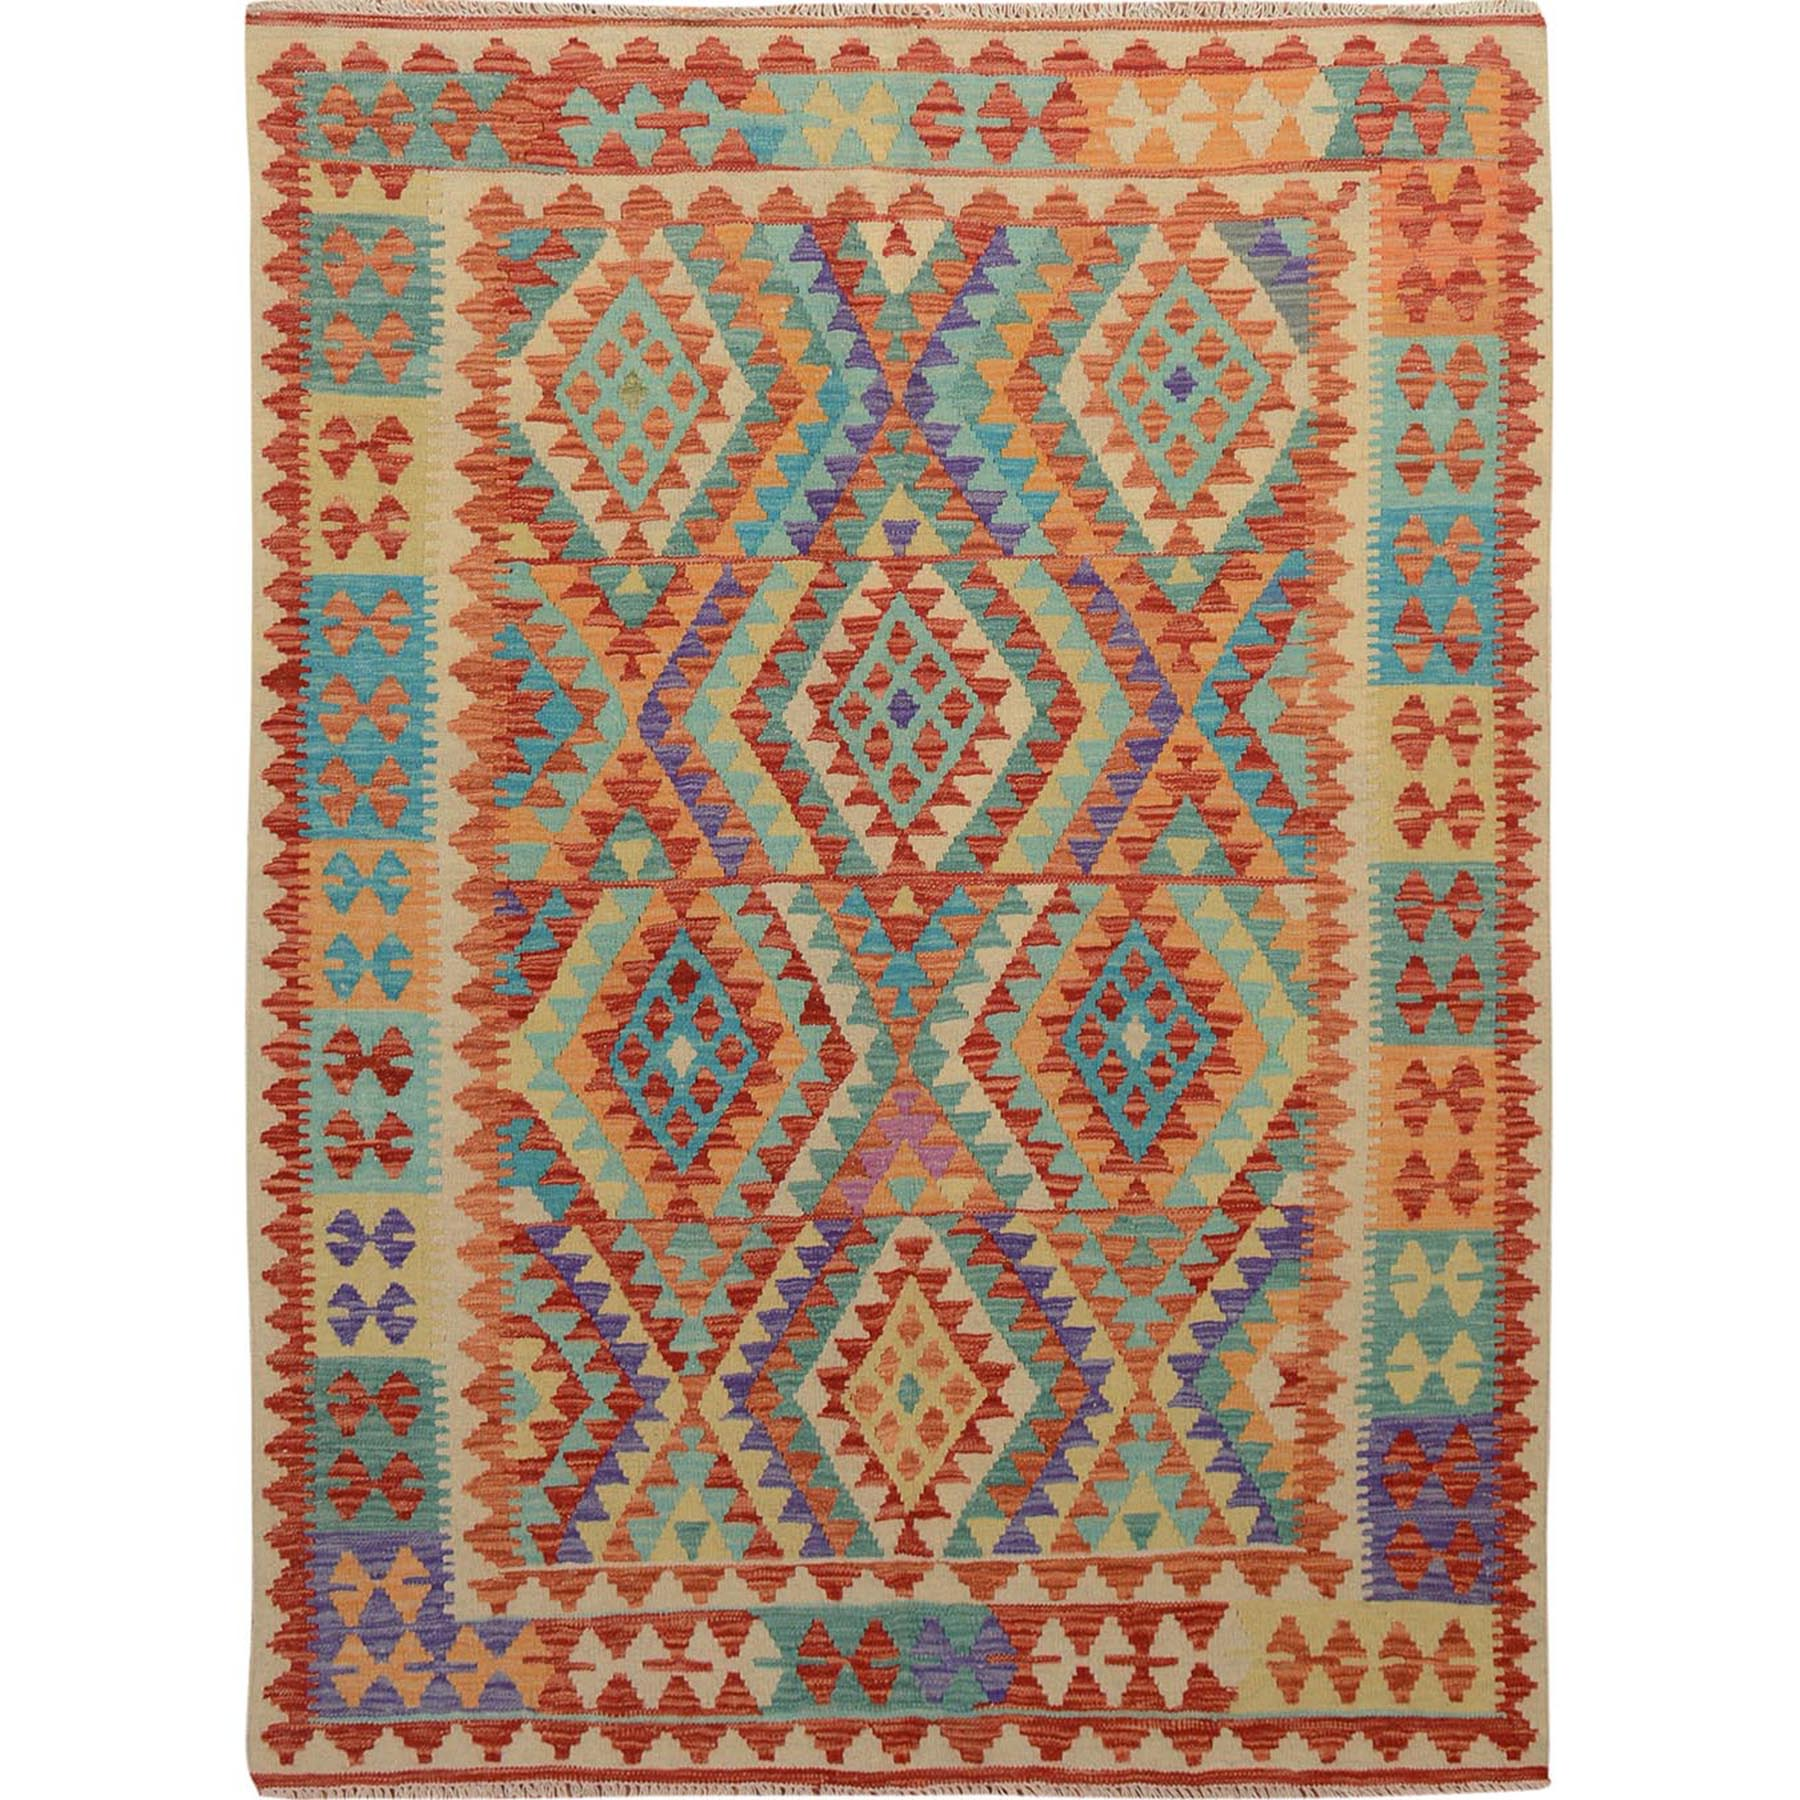 "5'x6'5"" Multi-colors Afghan Reversible Kilim Pure Wool Hand Woven Oriental Rug"